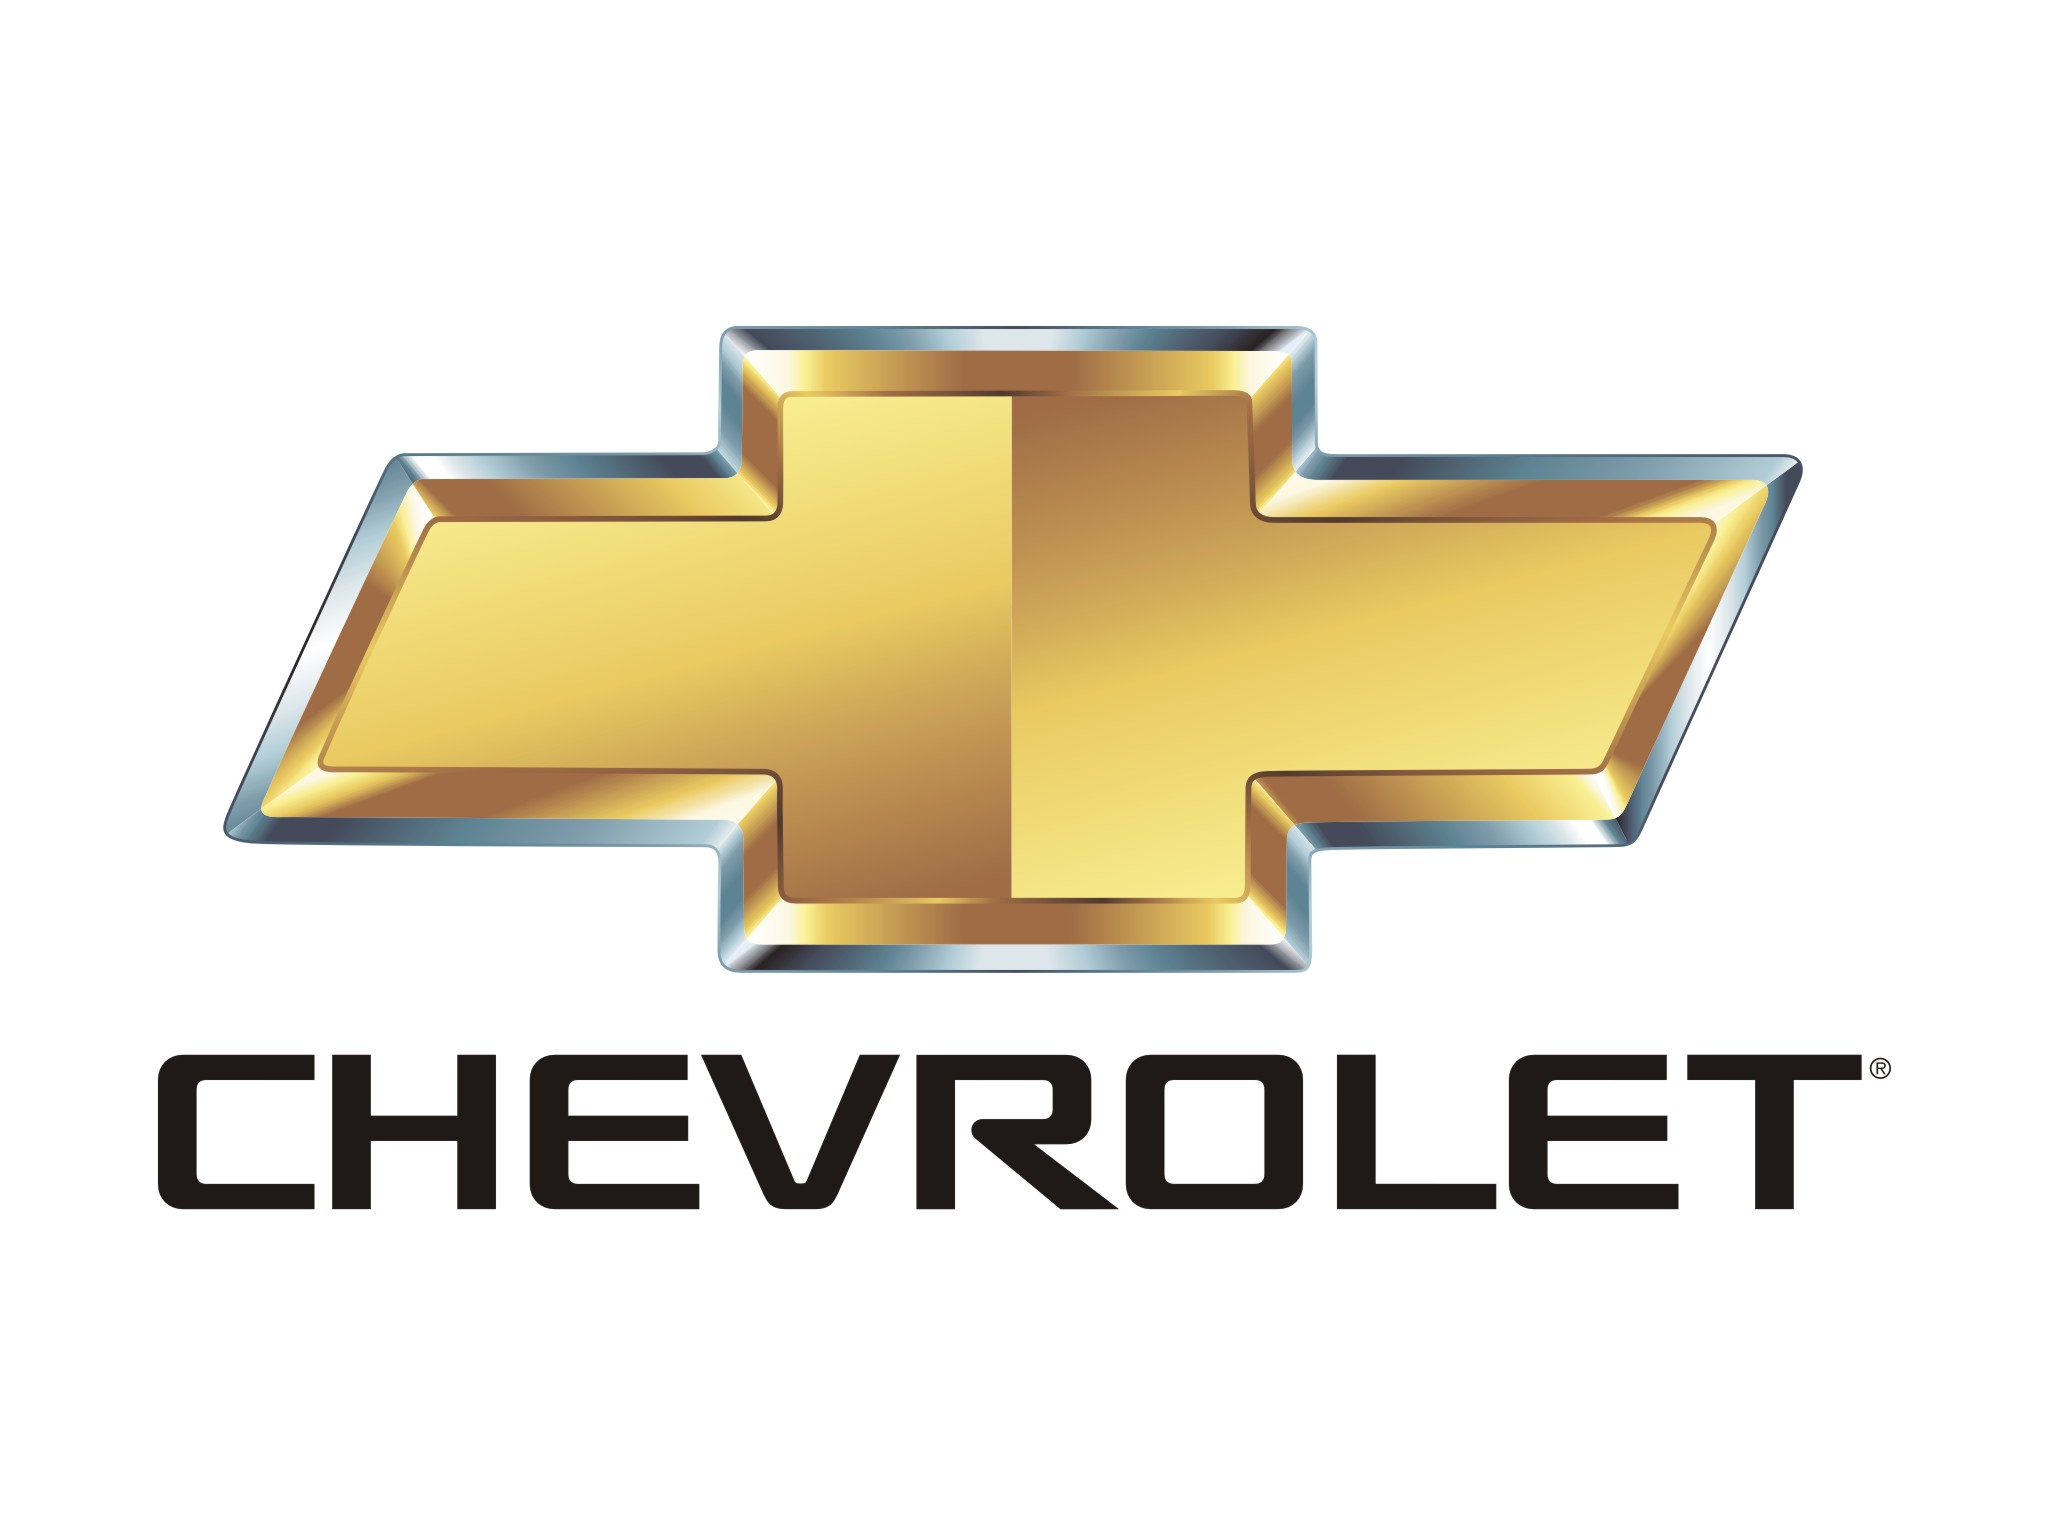 Symbol clipart chevy #15